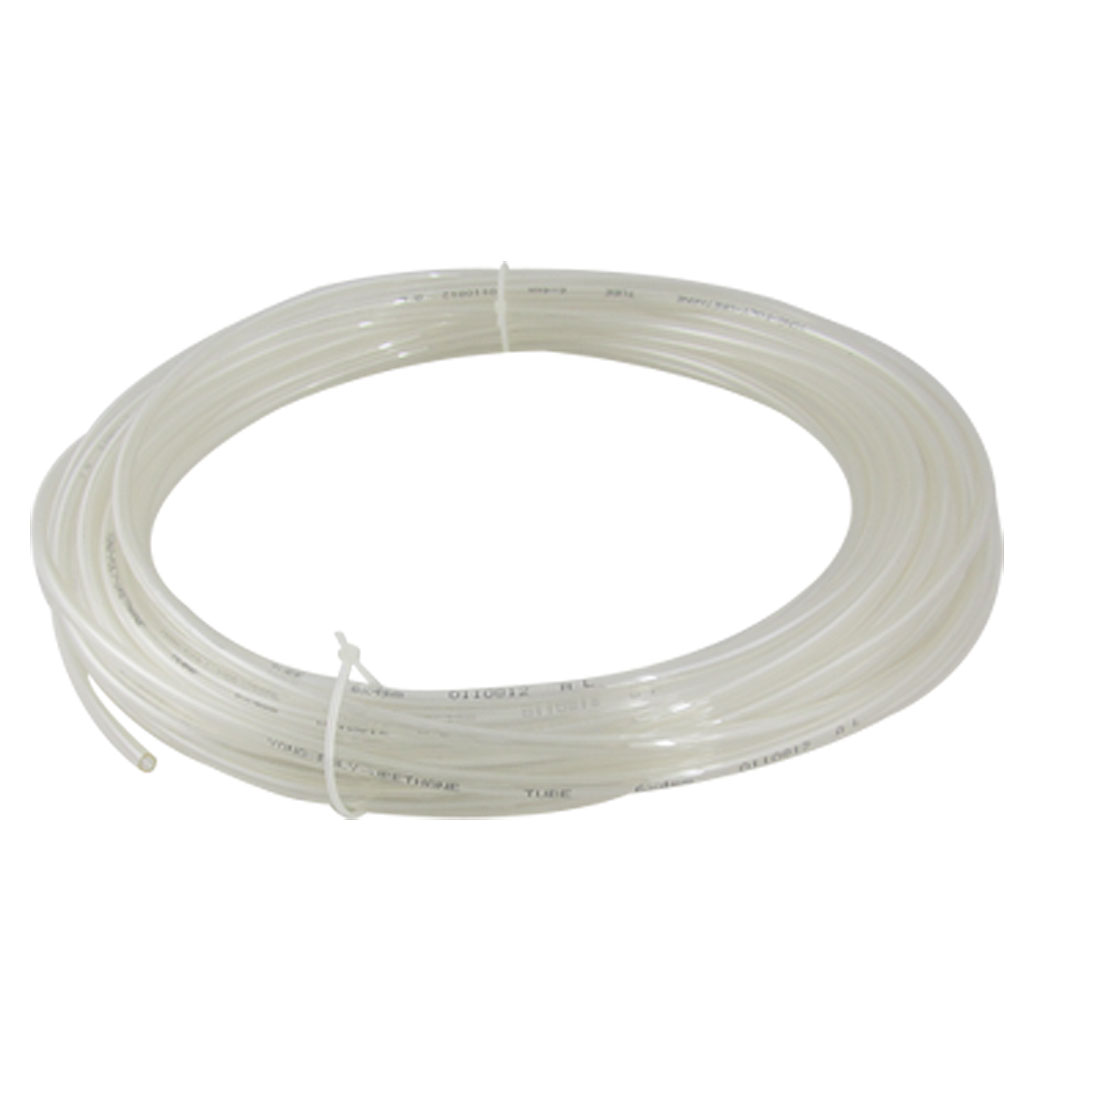 15M 49.2Ft 6mm x 4mm Clear Pneumatic Air PU Hose Pipe Tube